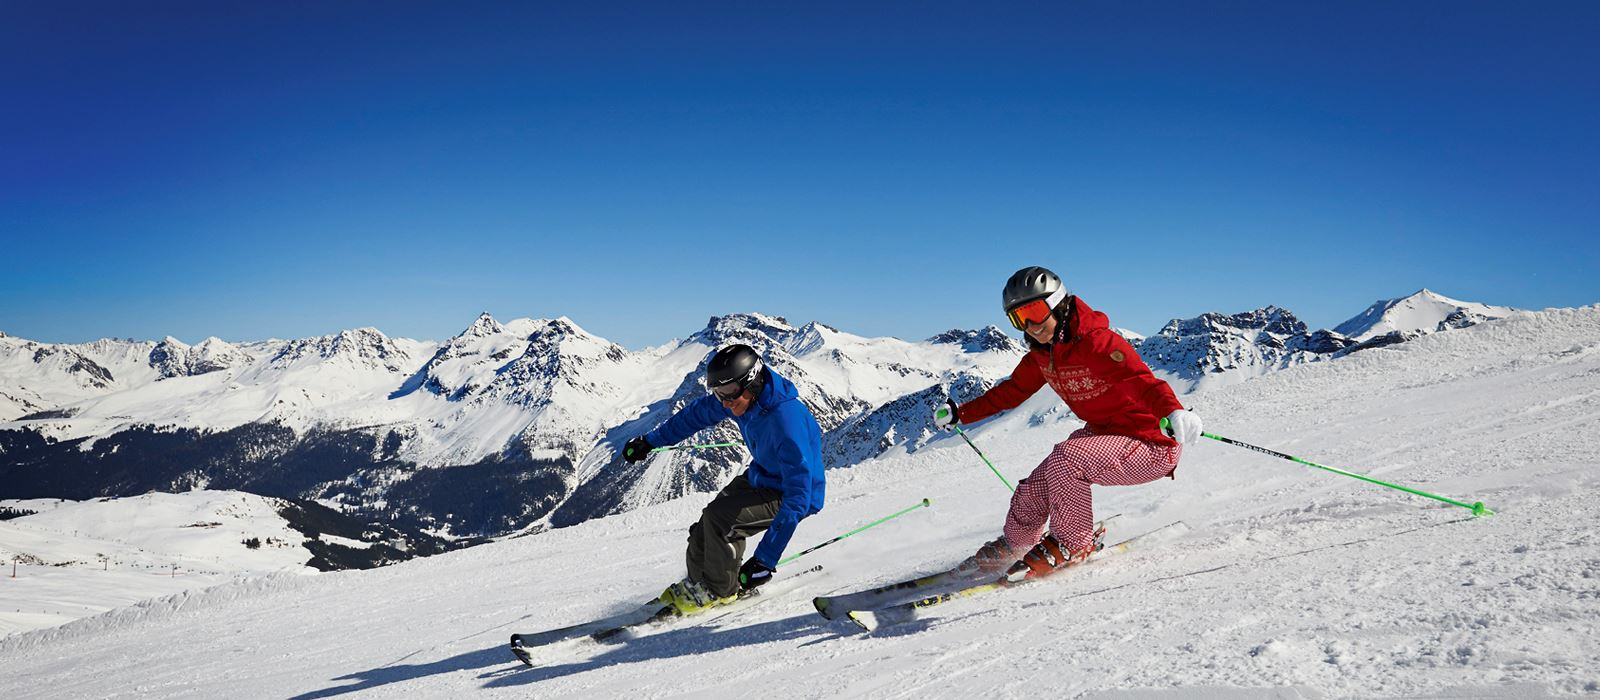 leisure_winter-arosa_03.jpg